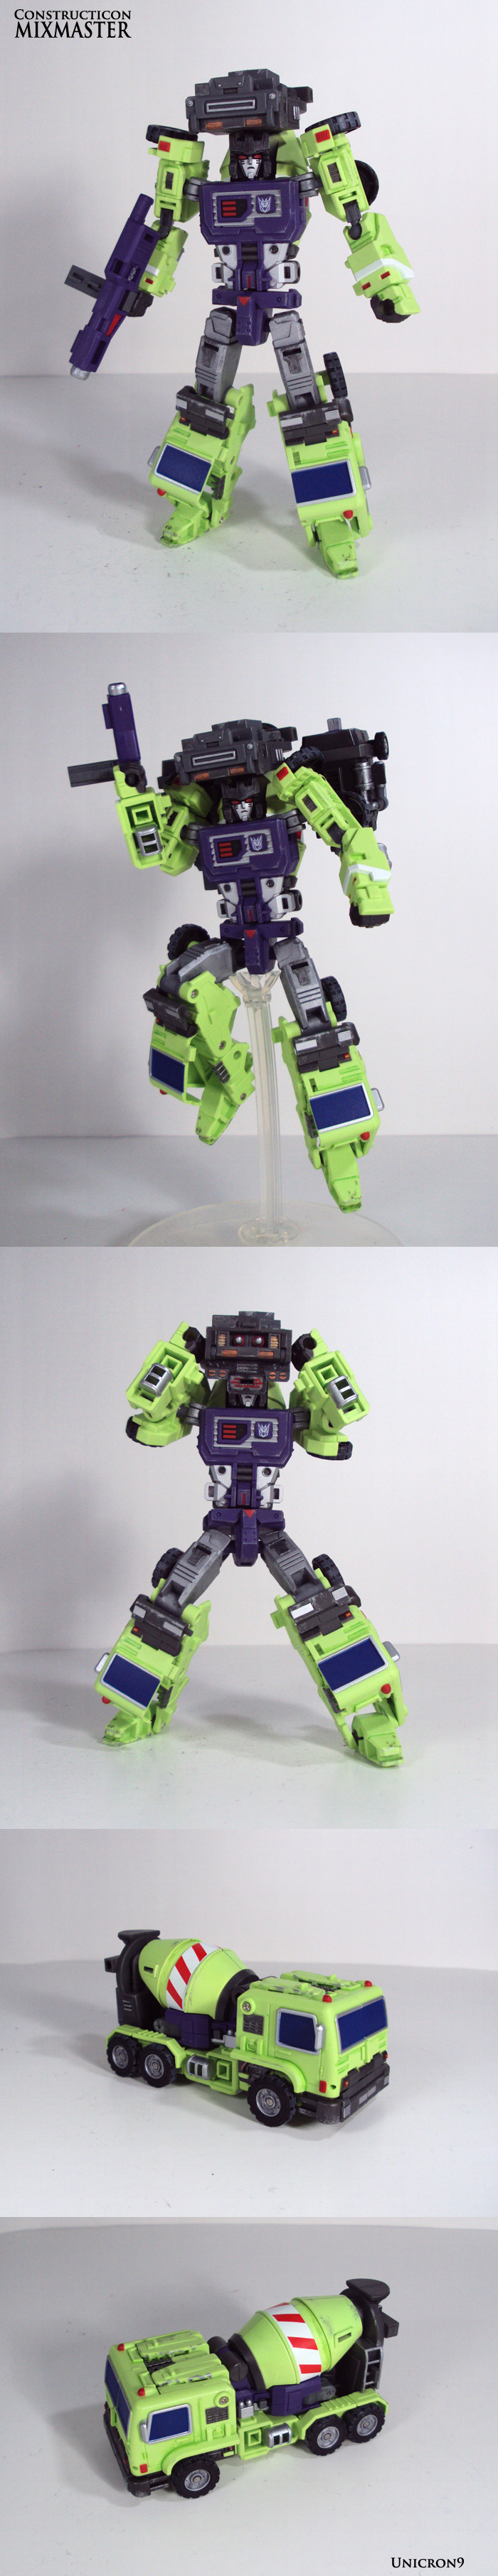 Constructicon: Mixmaster by Unicron9